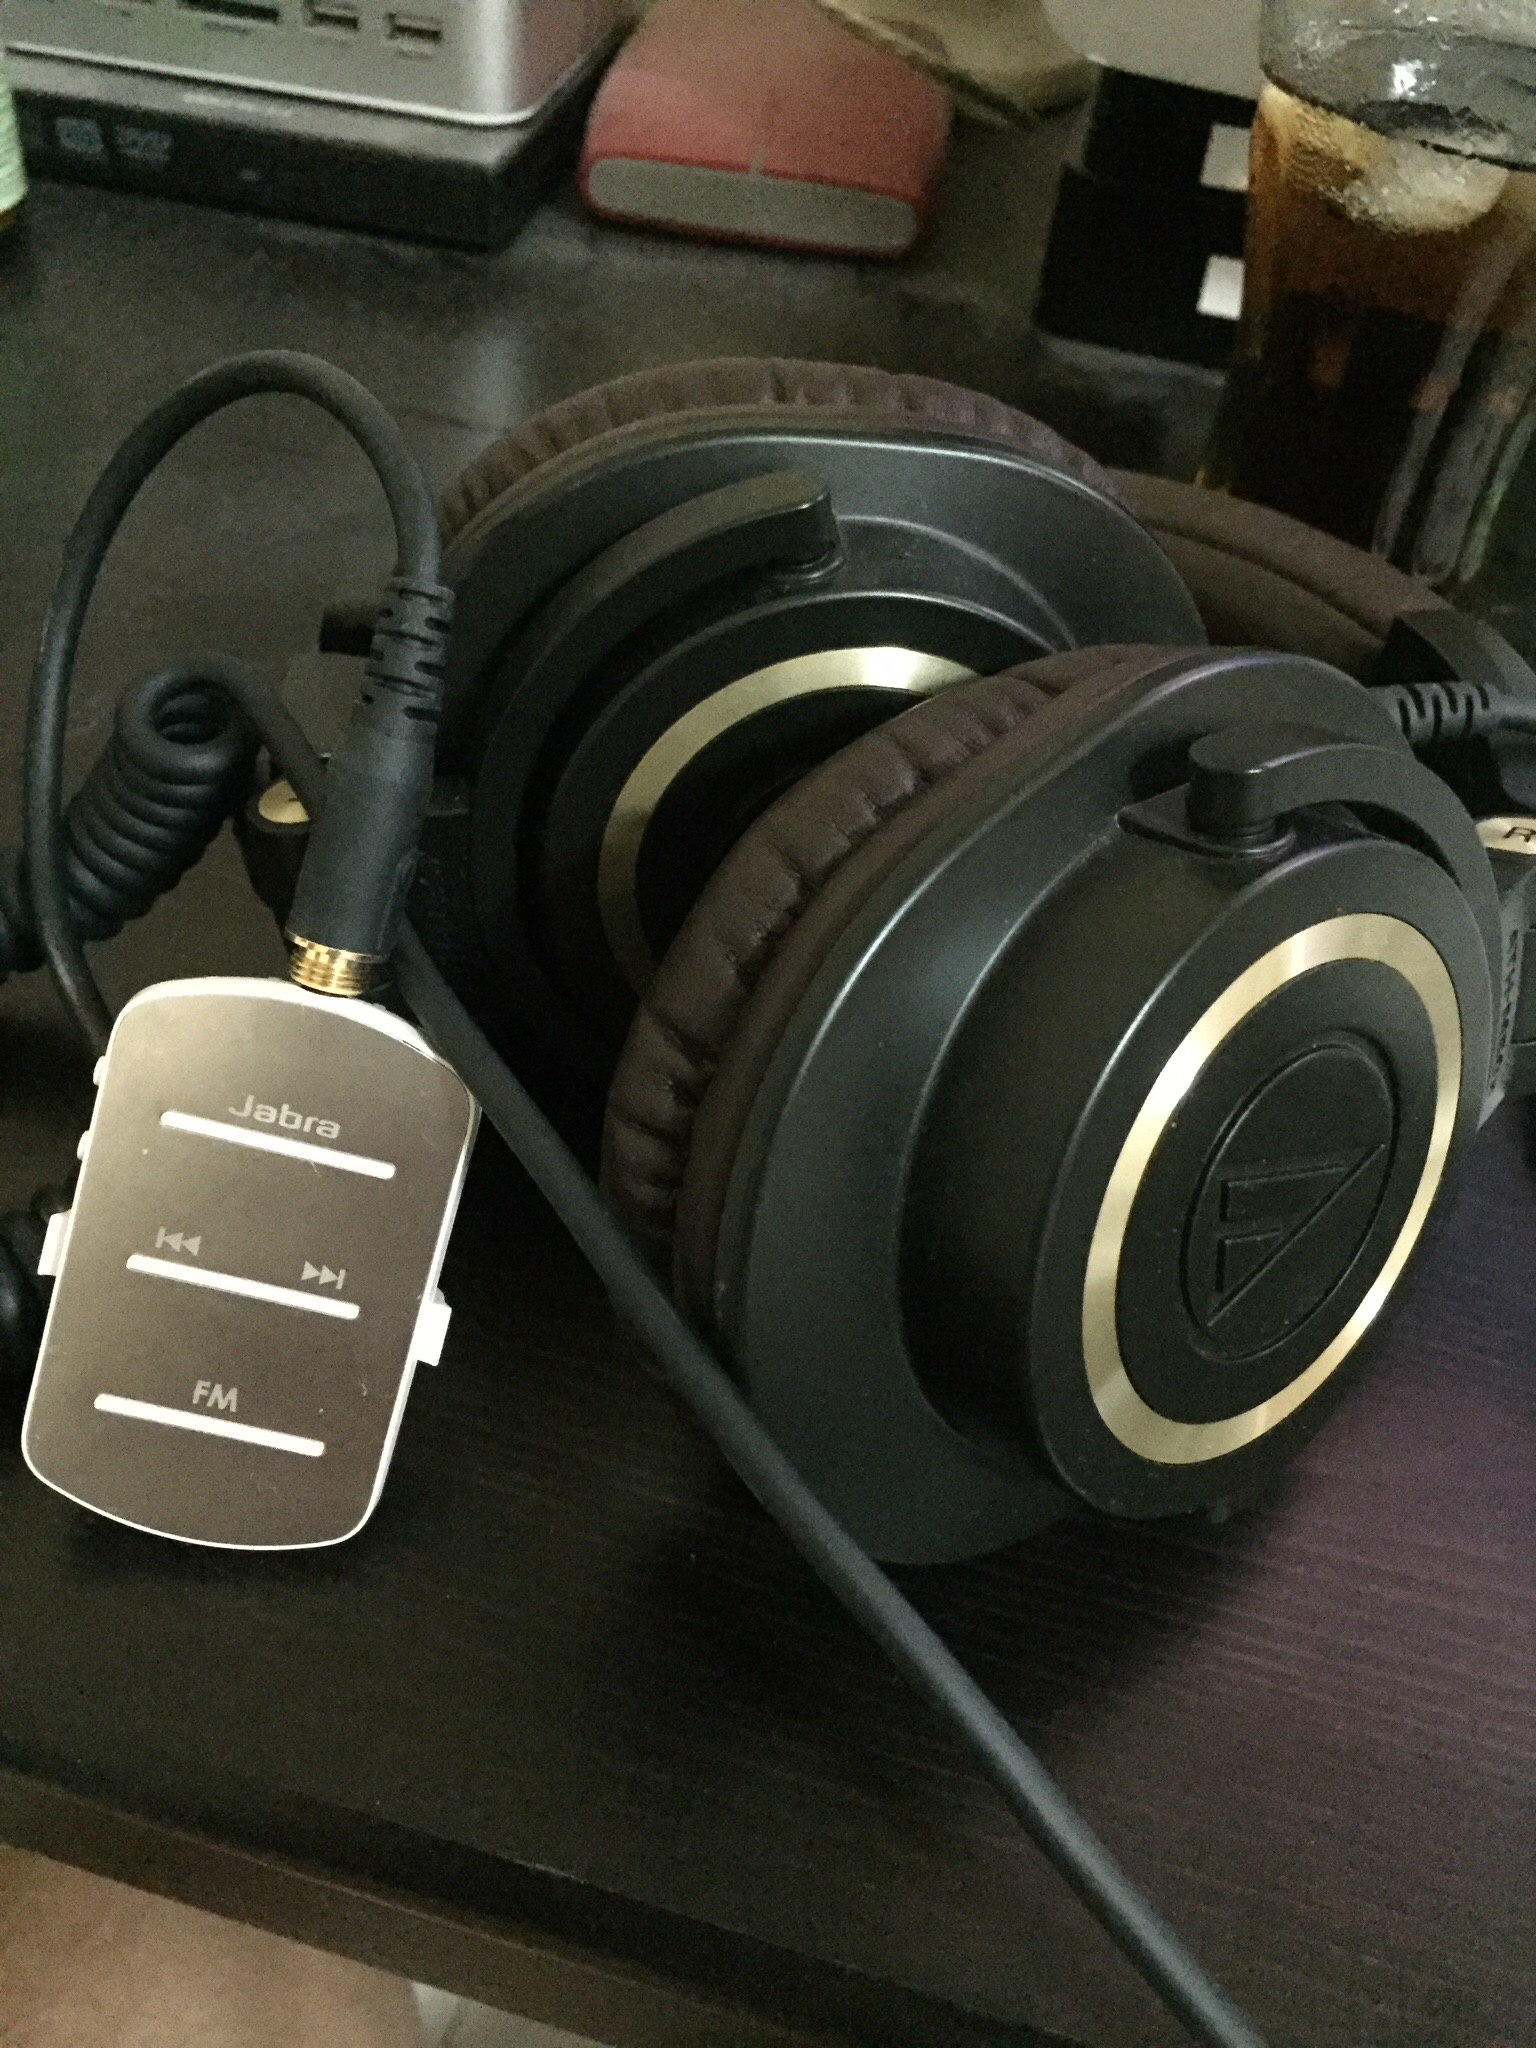 Jabra Tag with Audio-Technica ATH-M50X